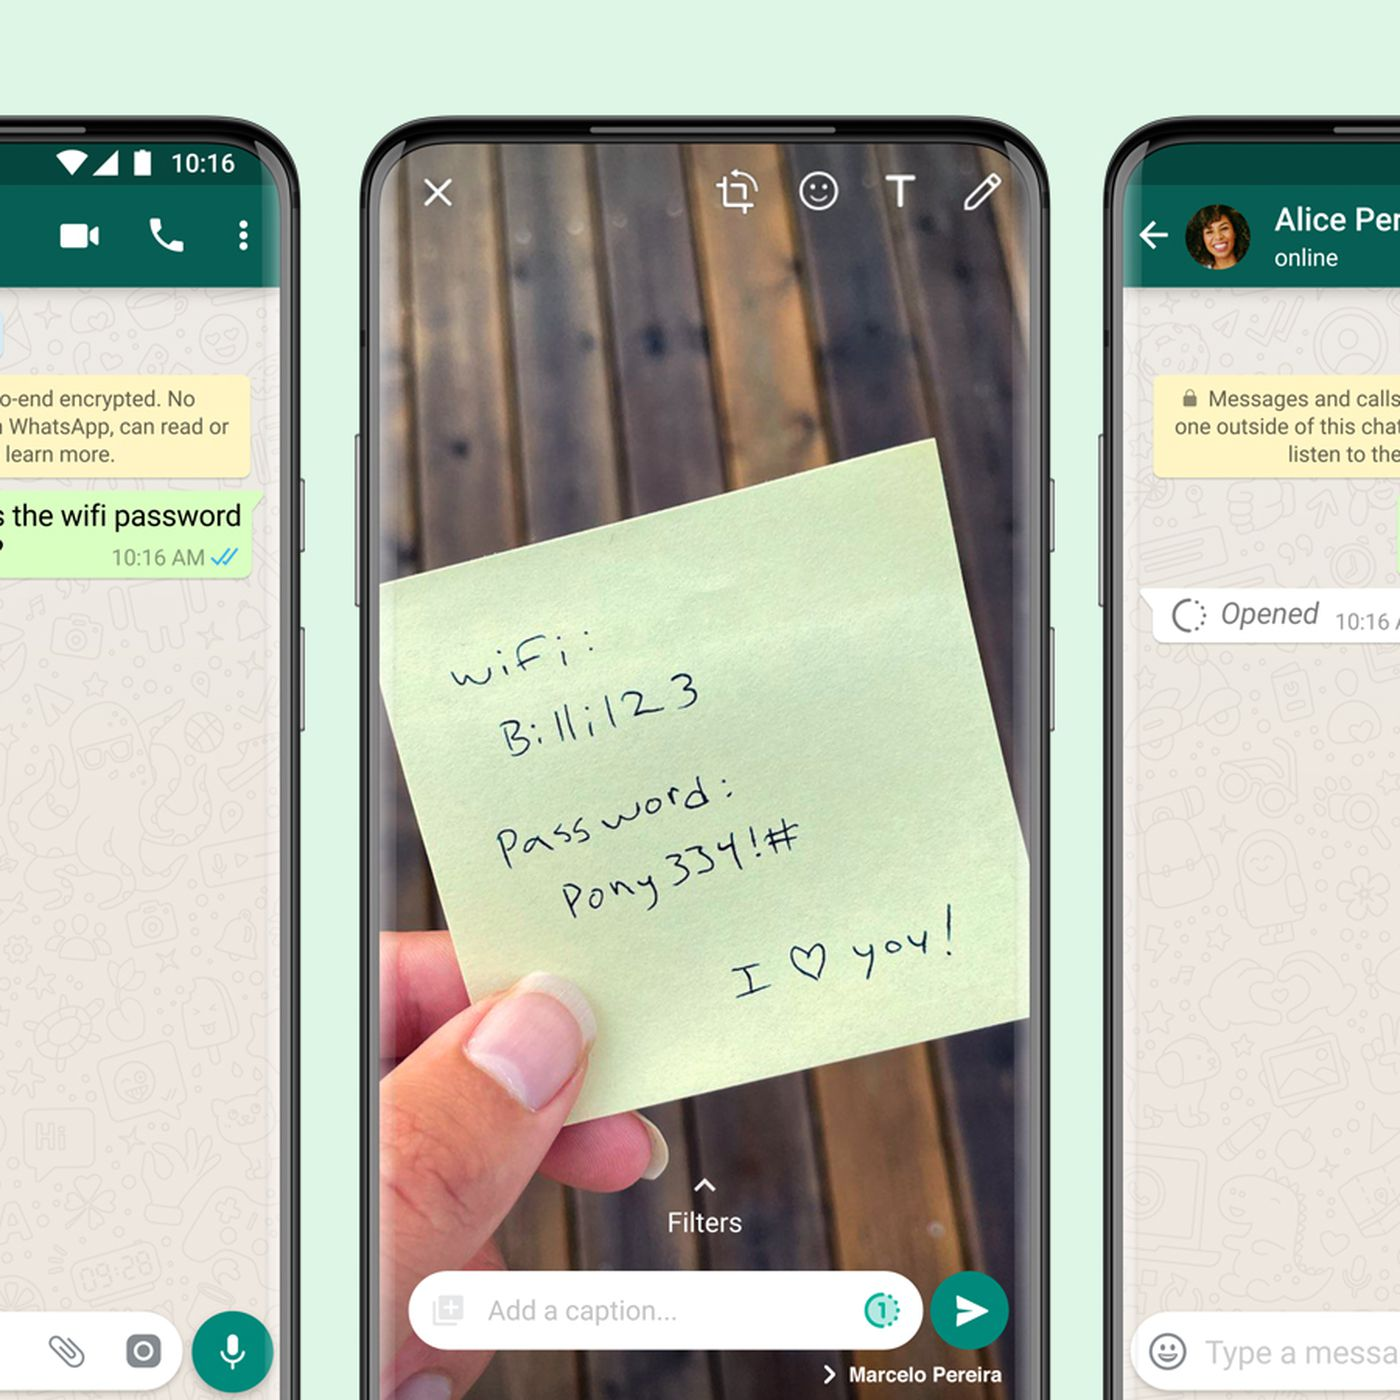 WhatsApp launches its 'View Once' disappearing photos and videos - The Verge